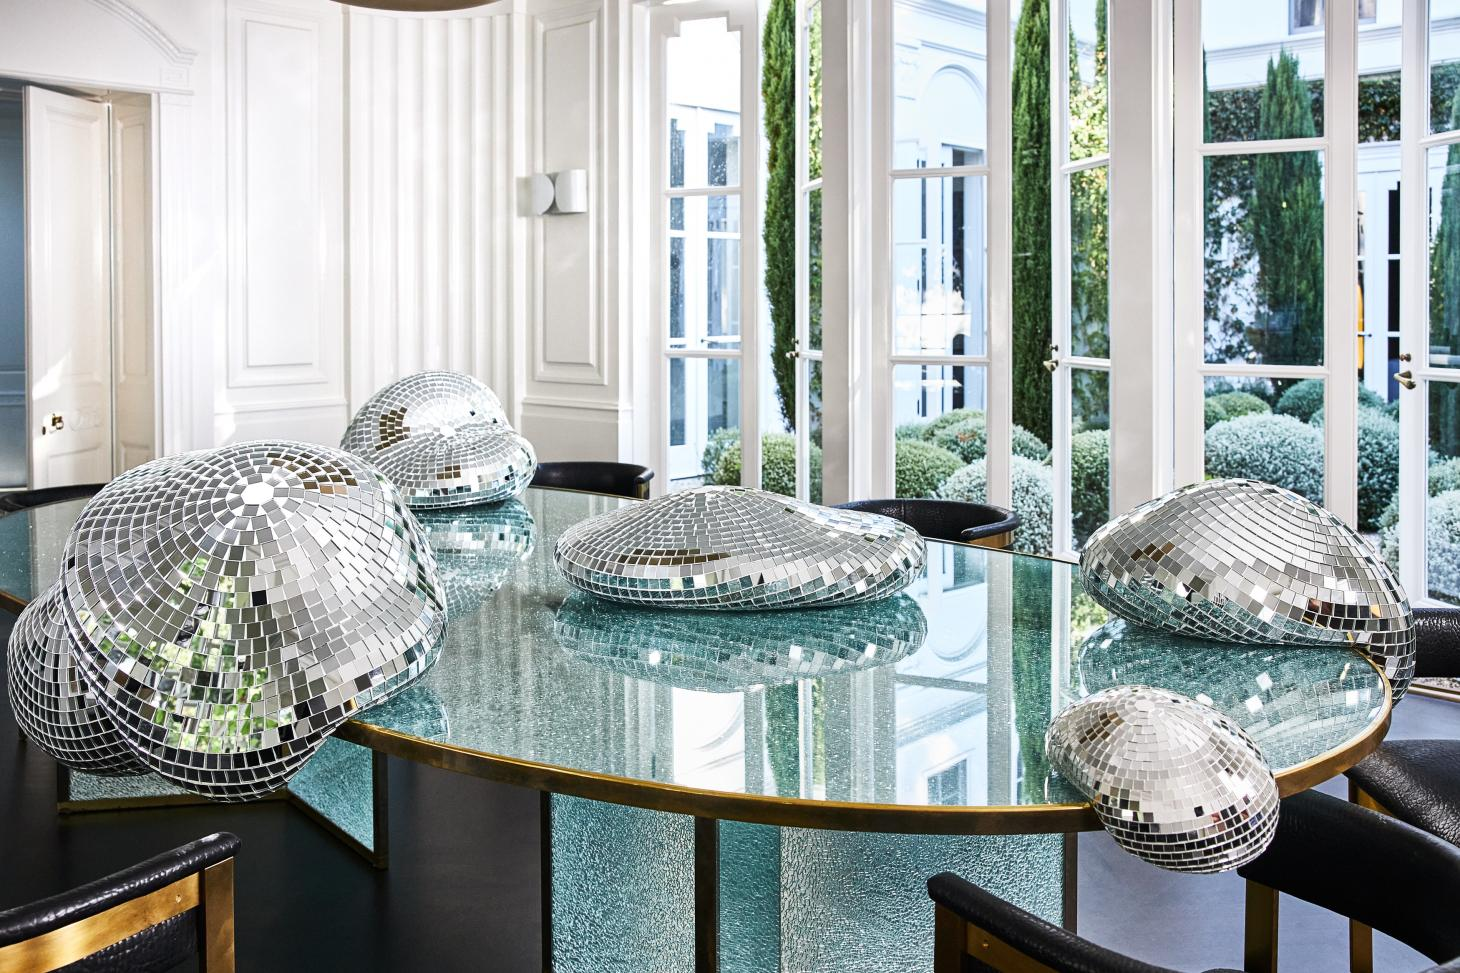 Seemingly melting disco balls on a table, speciall edition of Quelle Fête by Rotganzen for the online Kelly Wearstler shop